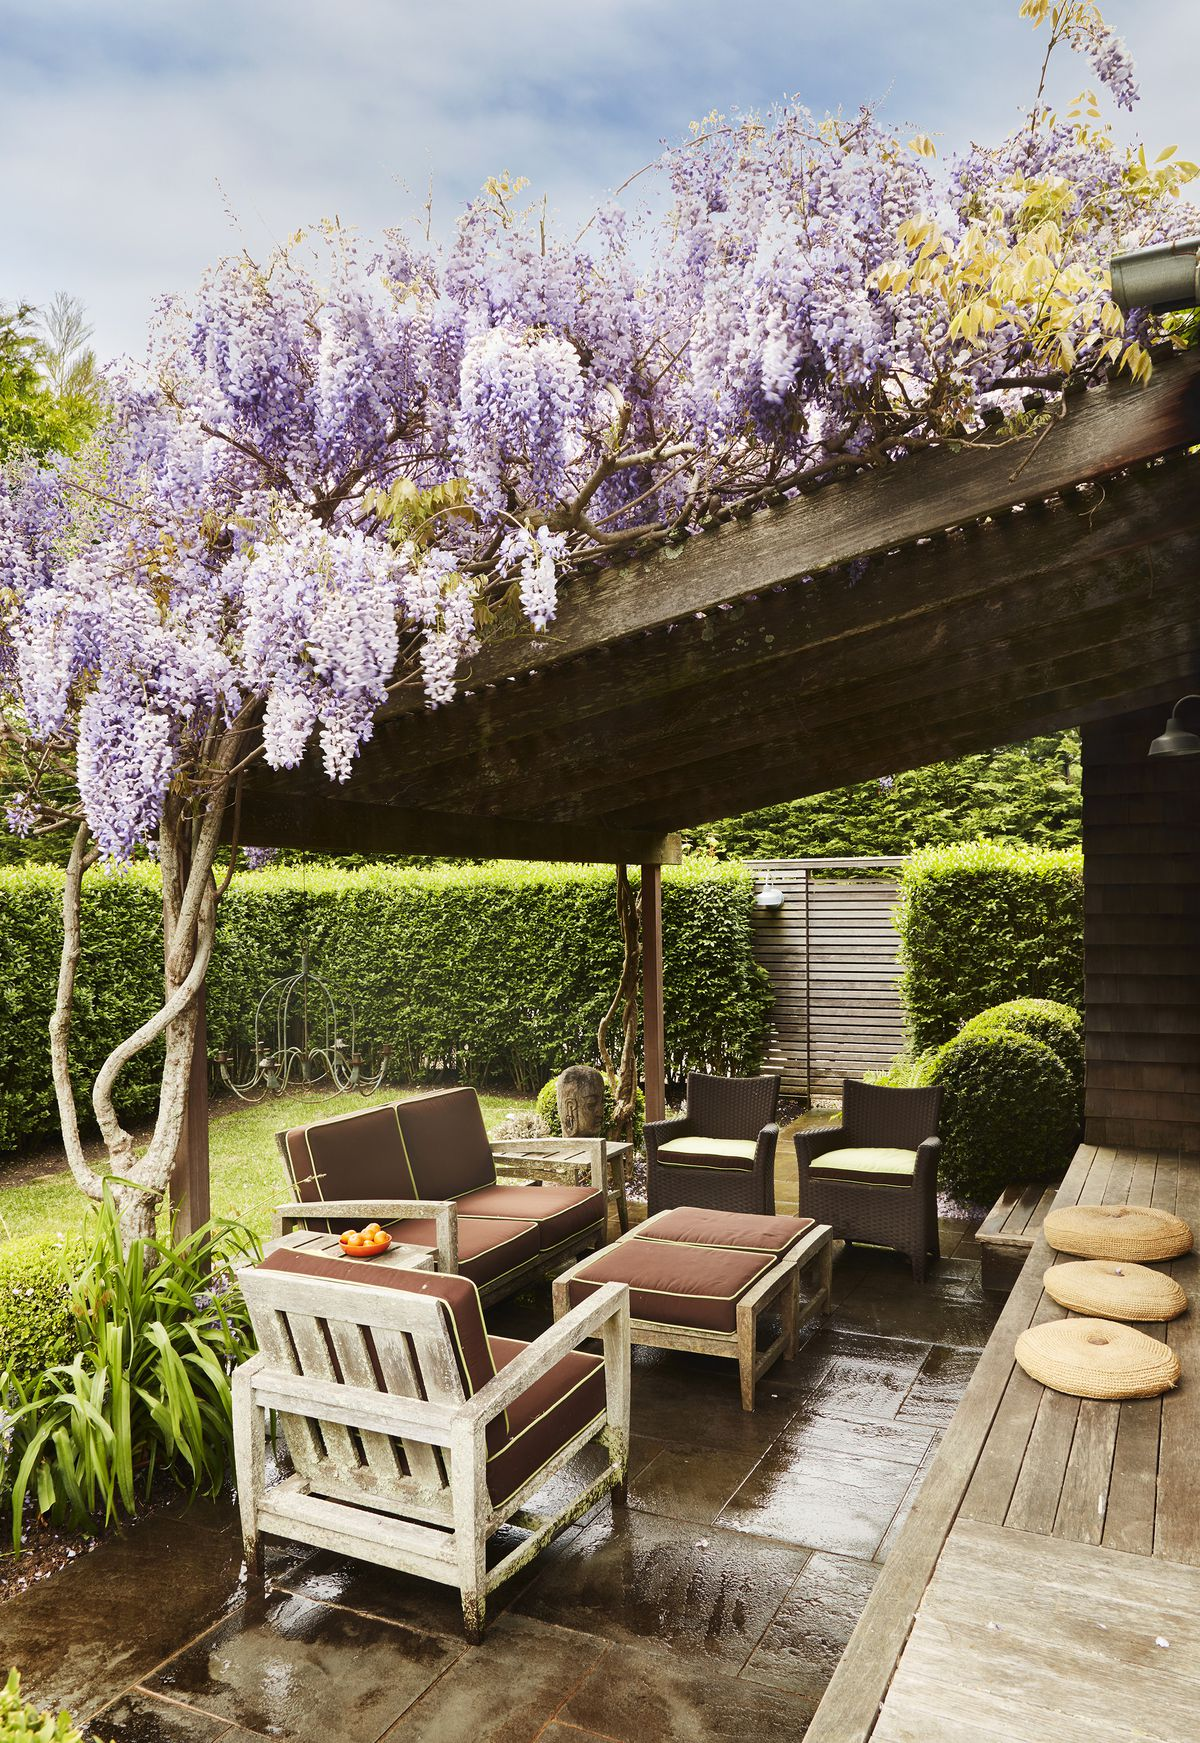 Brilliant purple wisteria tops an overhang that covers the patio.